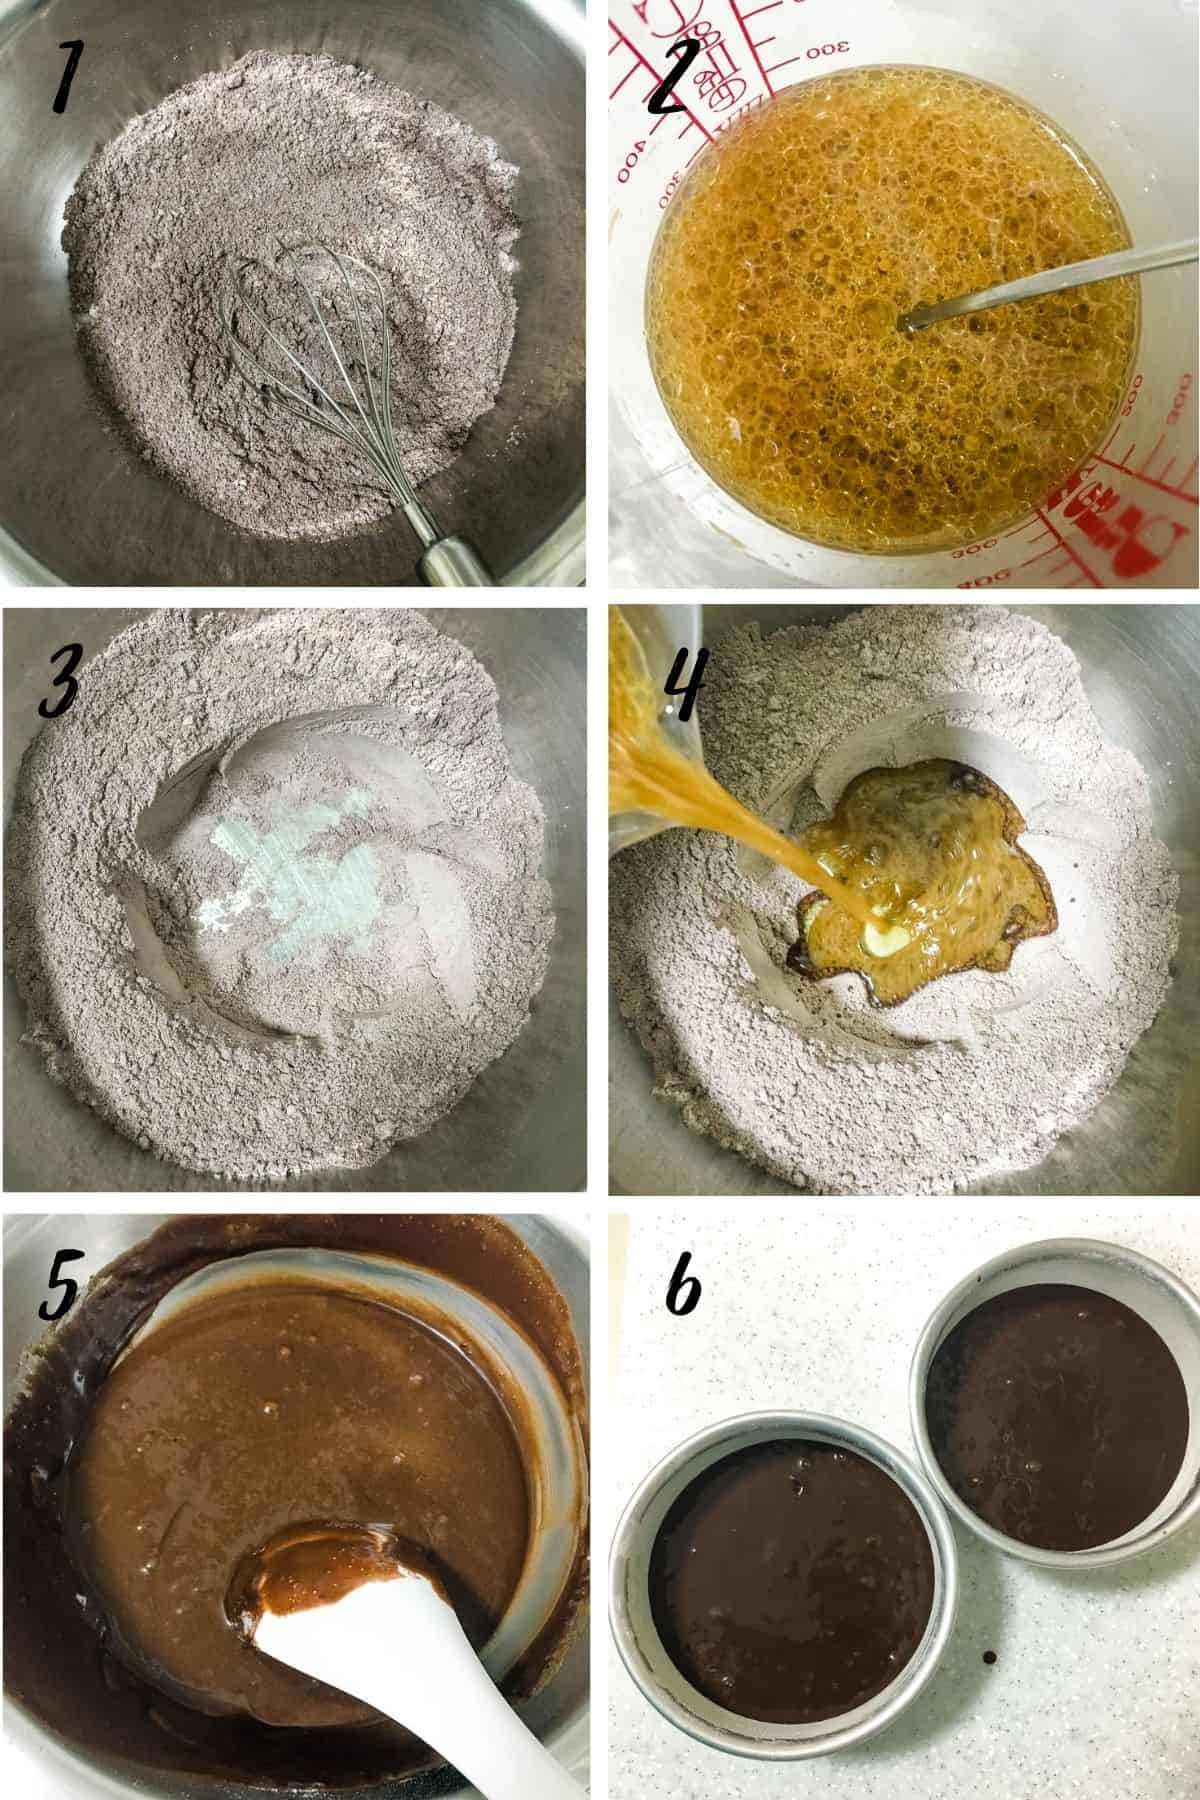 Poster with 6 images showing how to mix an eggless chocolate cake batter